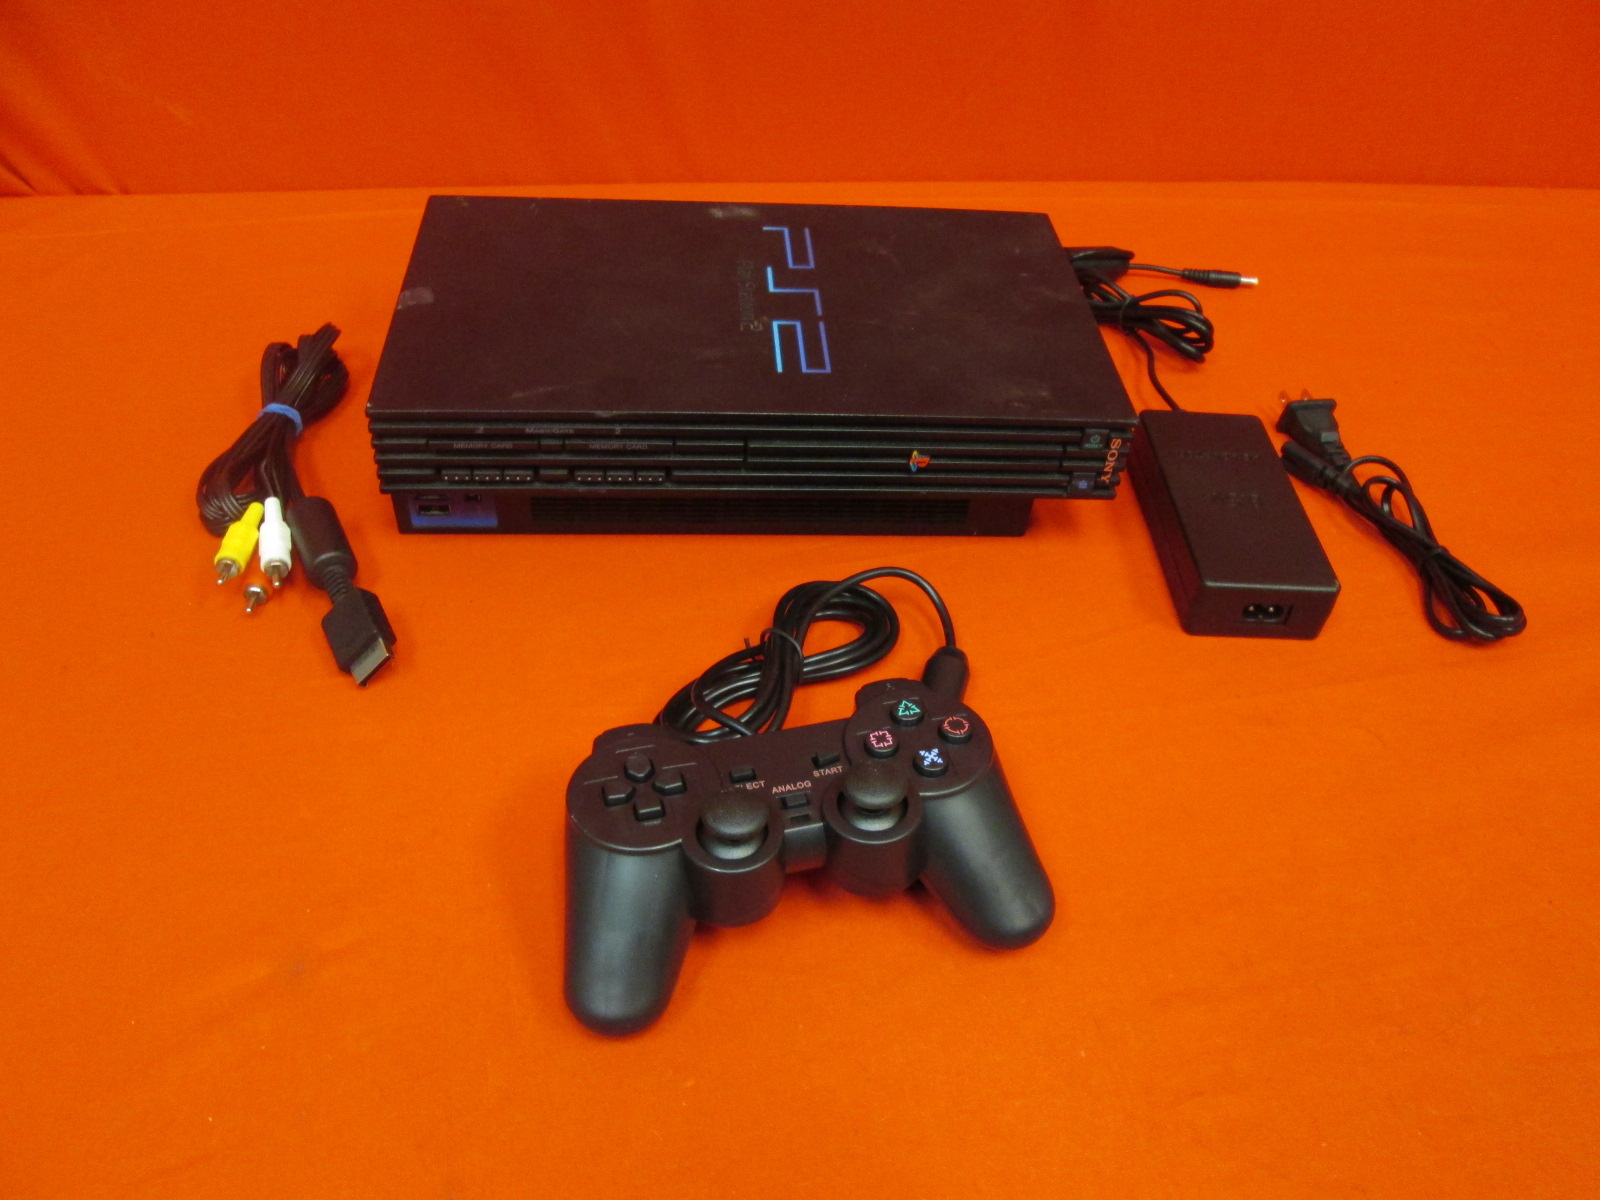 PlayStation 2 Video Game Console Black With Controller